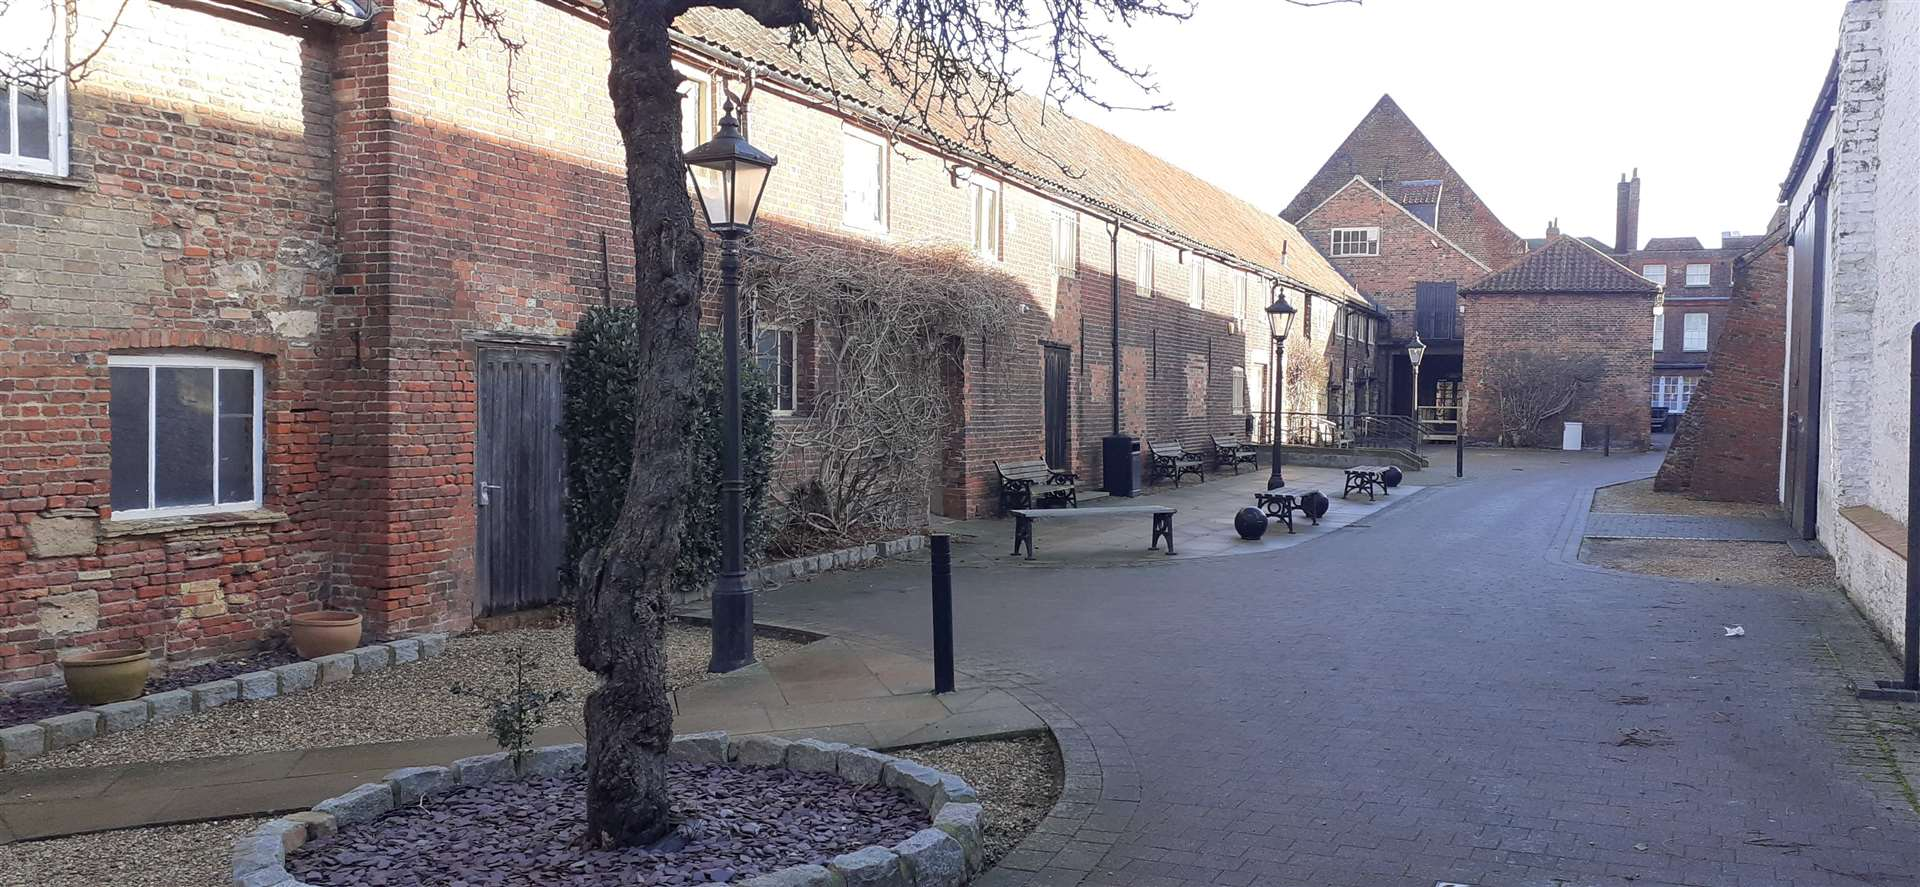 The courtyard at St George's Guildhall in King Street, Lynn (44354547)